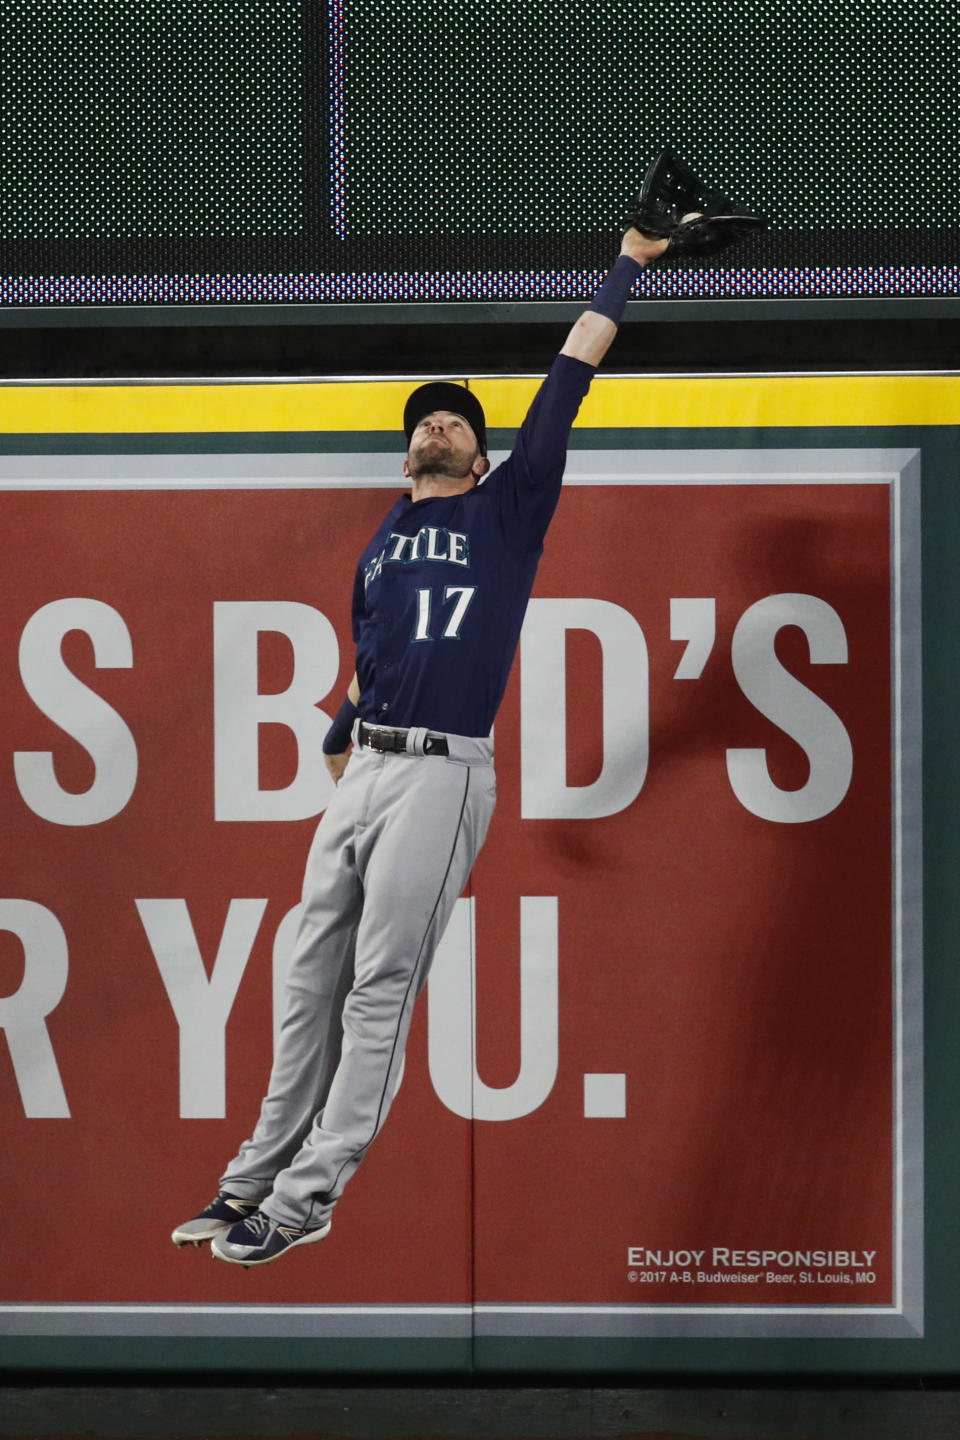 Seattle Mariners' Mitch Haniger leaps to catch the ball hit by Los Angeles Angels' Justin Upton during the sixth inning of a baseball game, Saturday, Sept. 15, 2018, in Anaheim, Calif. (AP Photo/Jae C. Hong)